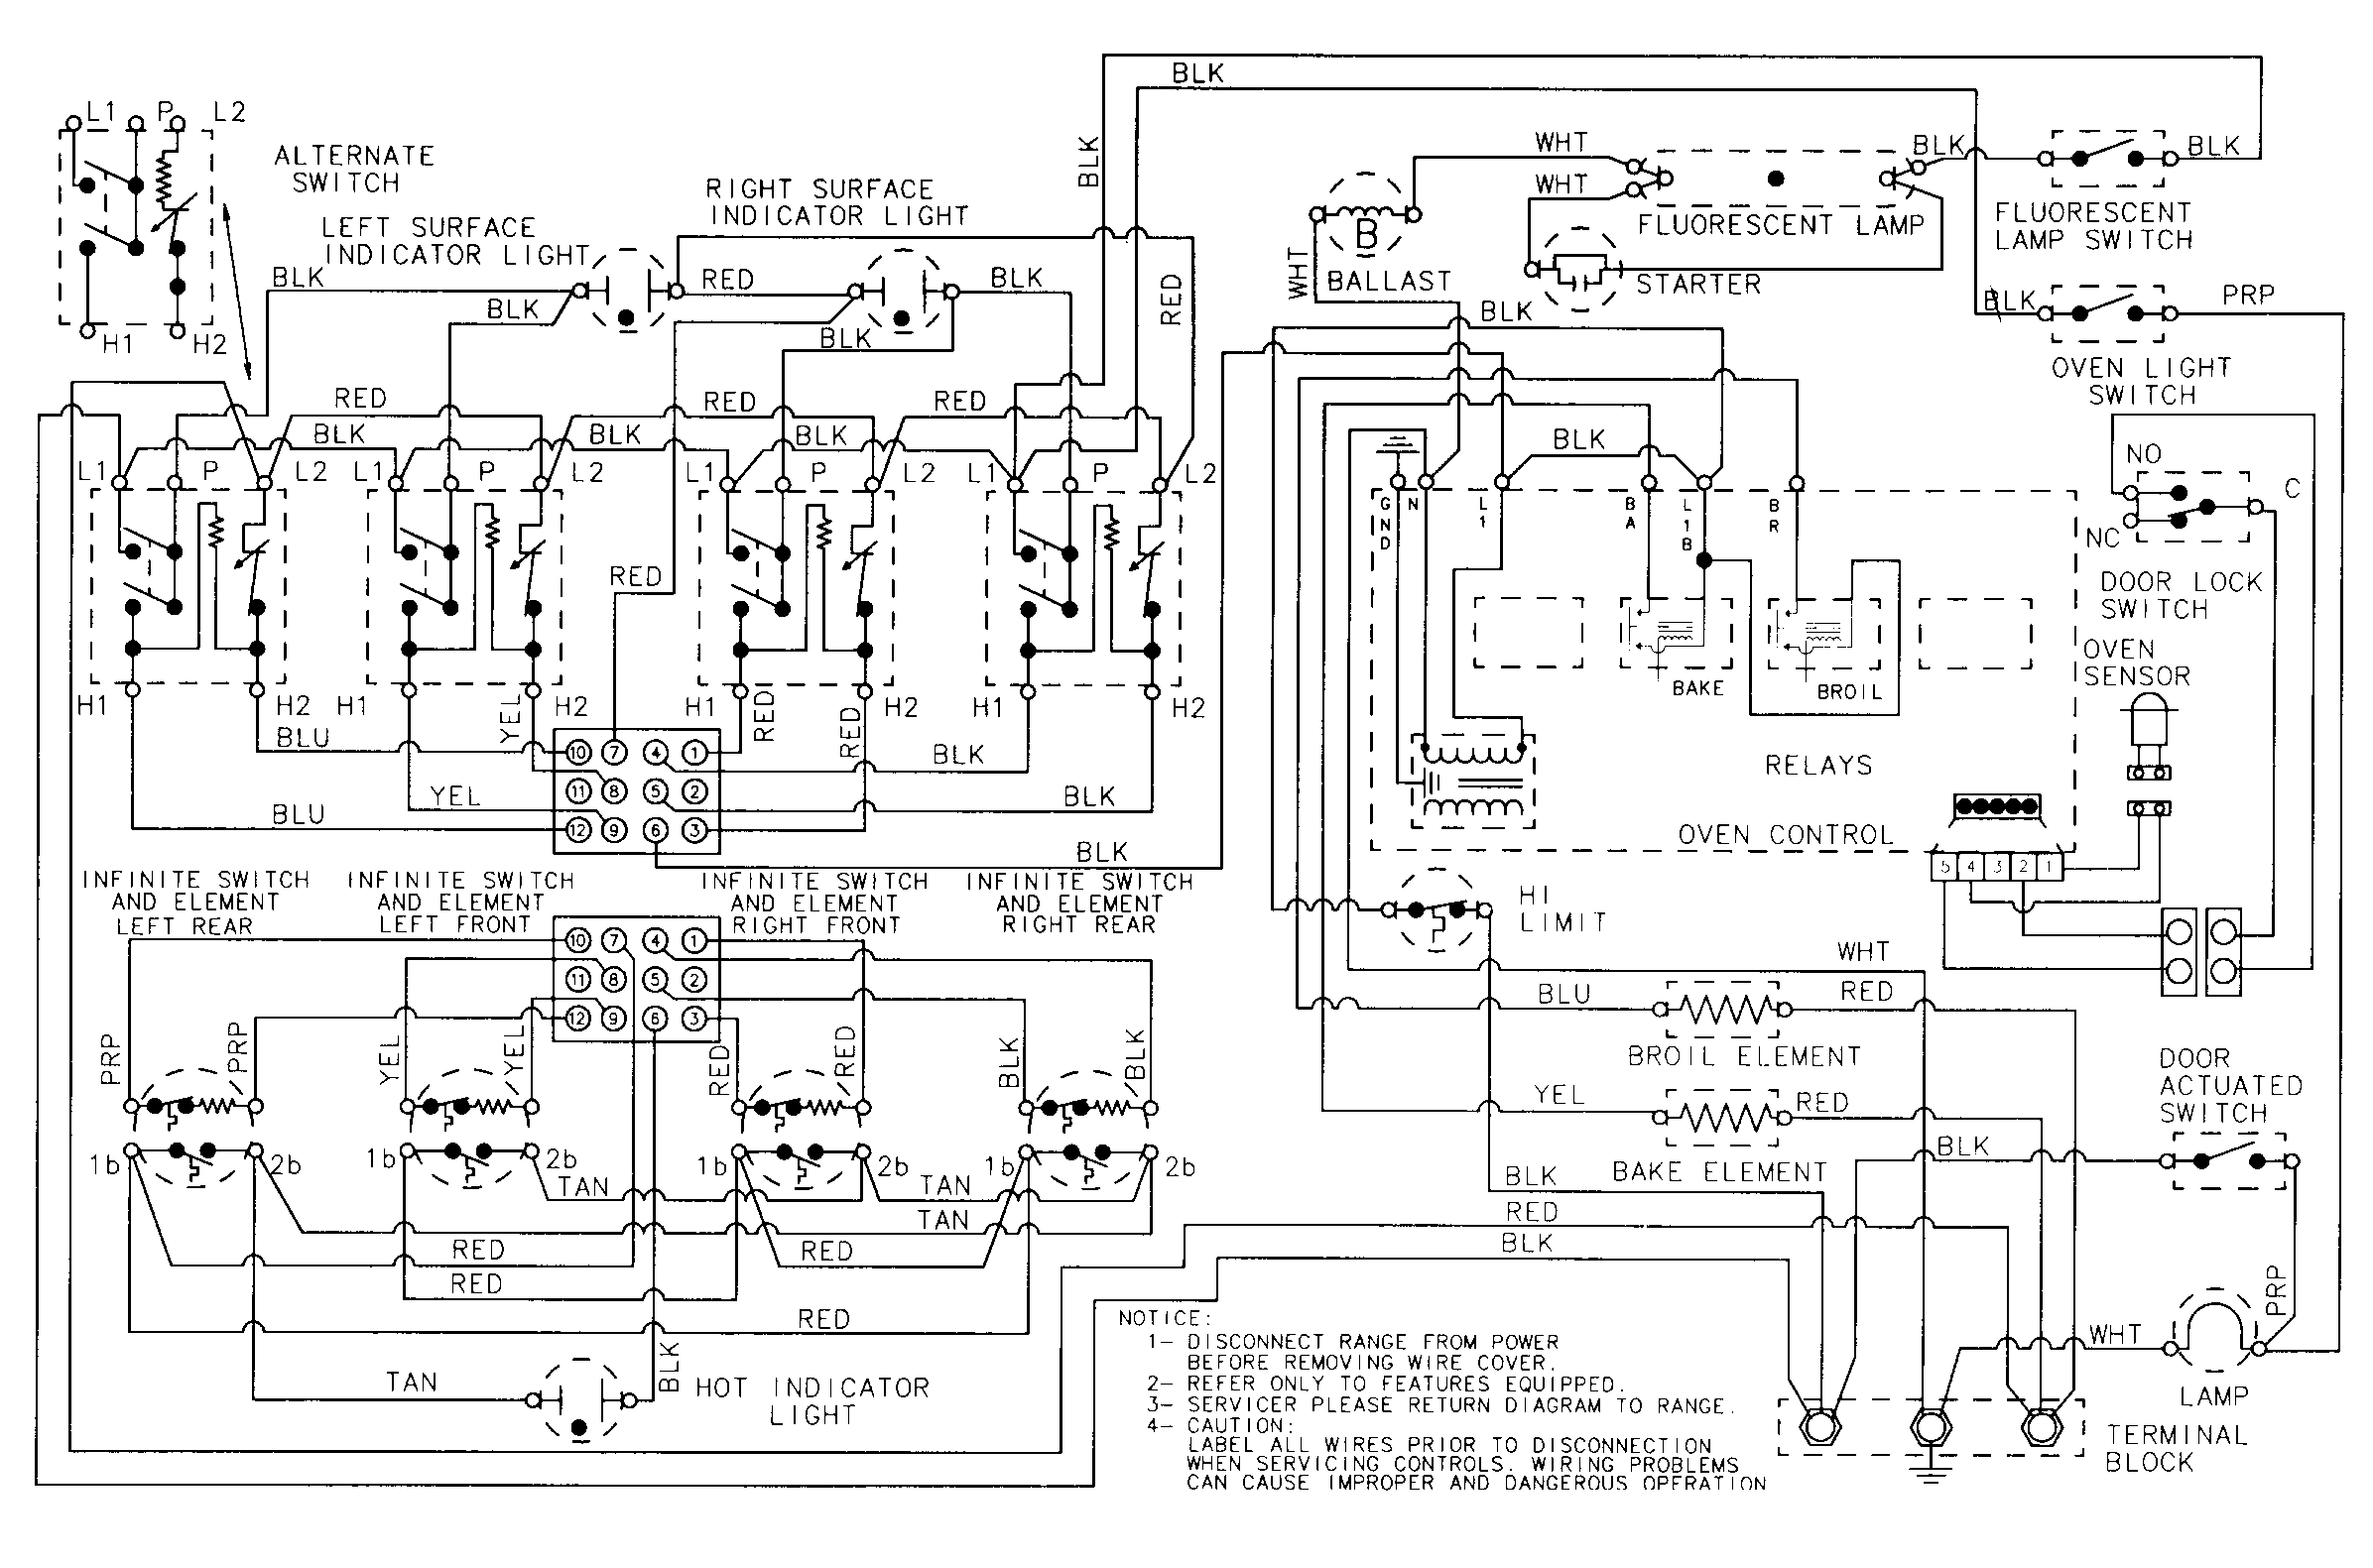 whirlpool gas dryer wiring diagram collection wiring diagram sample whirlpool water heater wiring schematic whirlpool gas dryer wiring diagram download cre9600 range wiring information parts diagram 13 j download wiring diagram